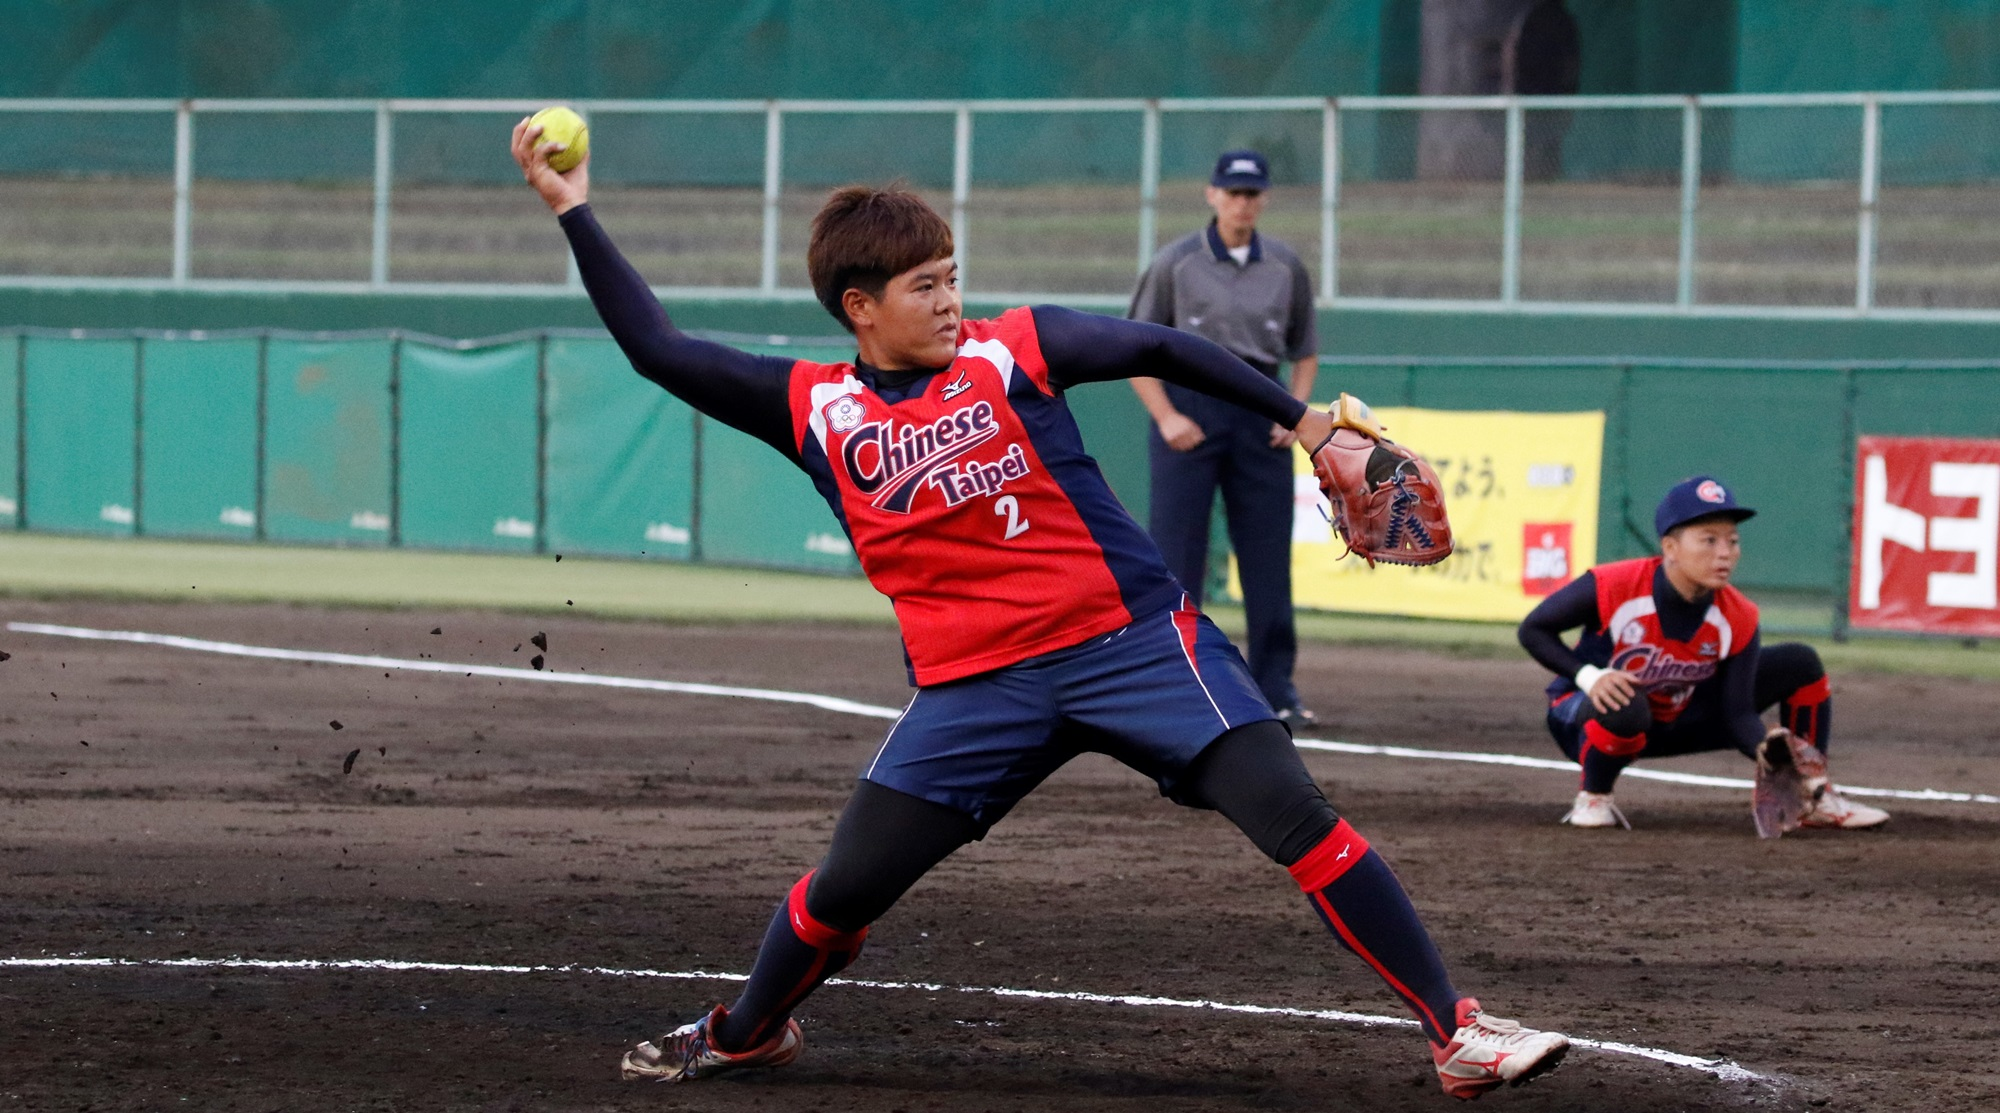 Lin Ying Hsin, the winning pitcher